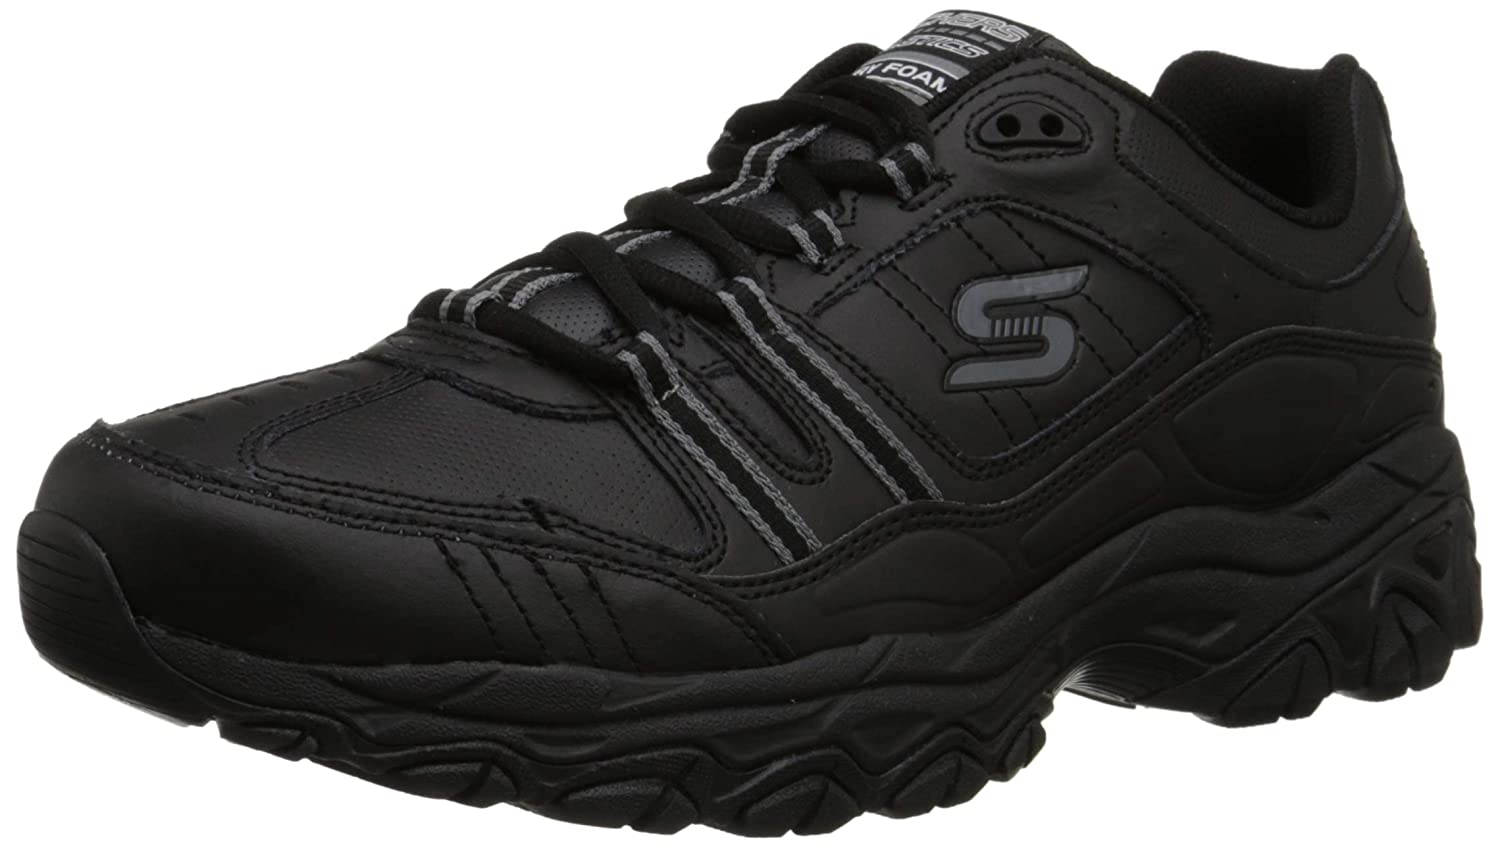 Skechers Sport Hommes Afterburn Memory Foam Strike Strike on Training chaussures, Noir  100% de contre-garantie authentique